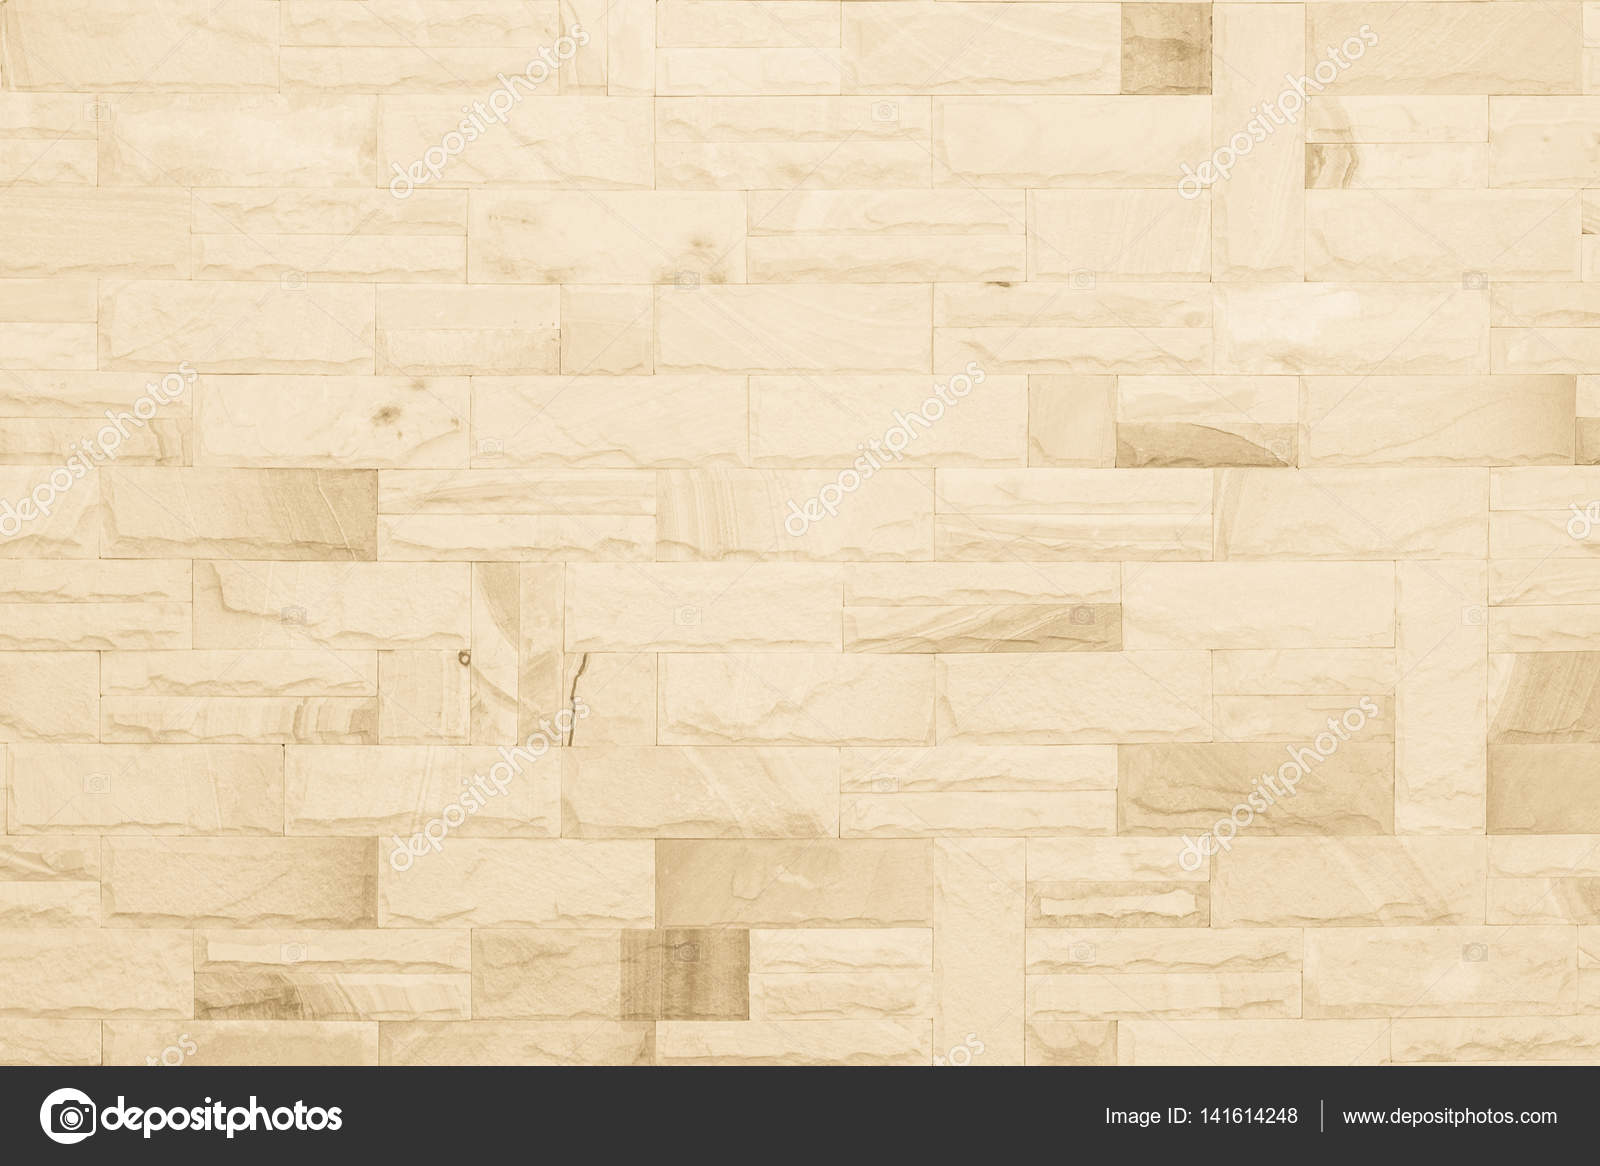 black and white brick wall texture background abstract weathered texture stained old stucco. Black Bedroom Furniture Sets. Home Design Ideas